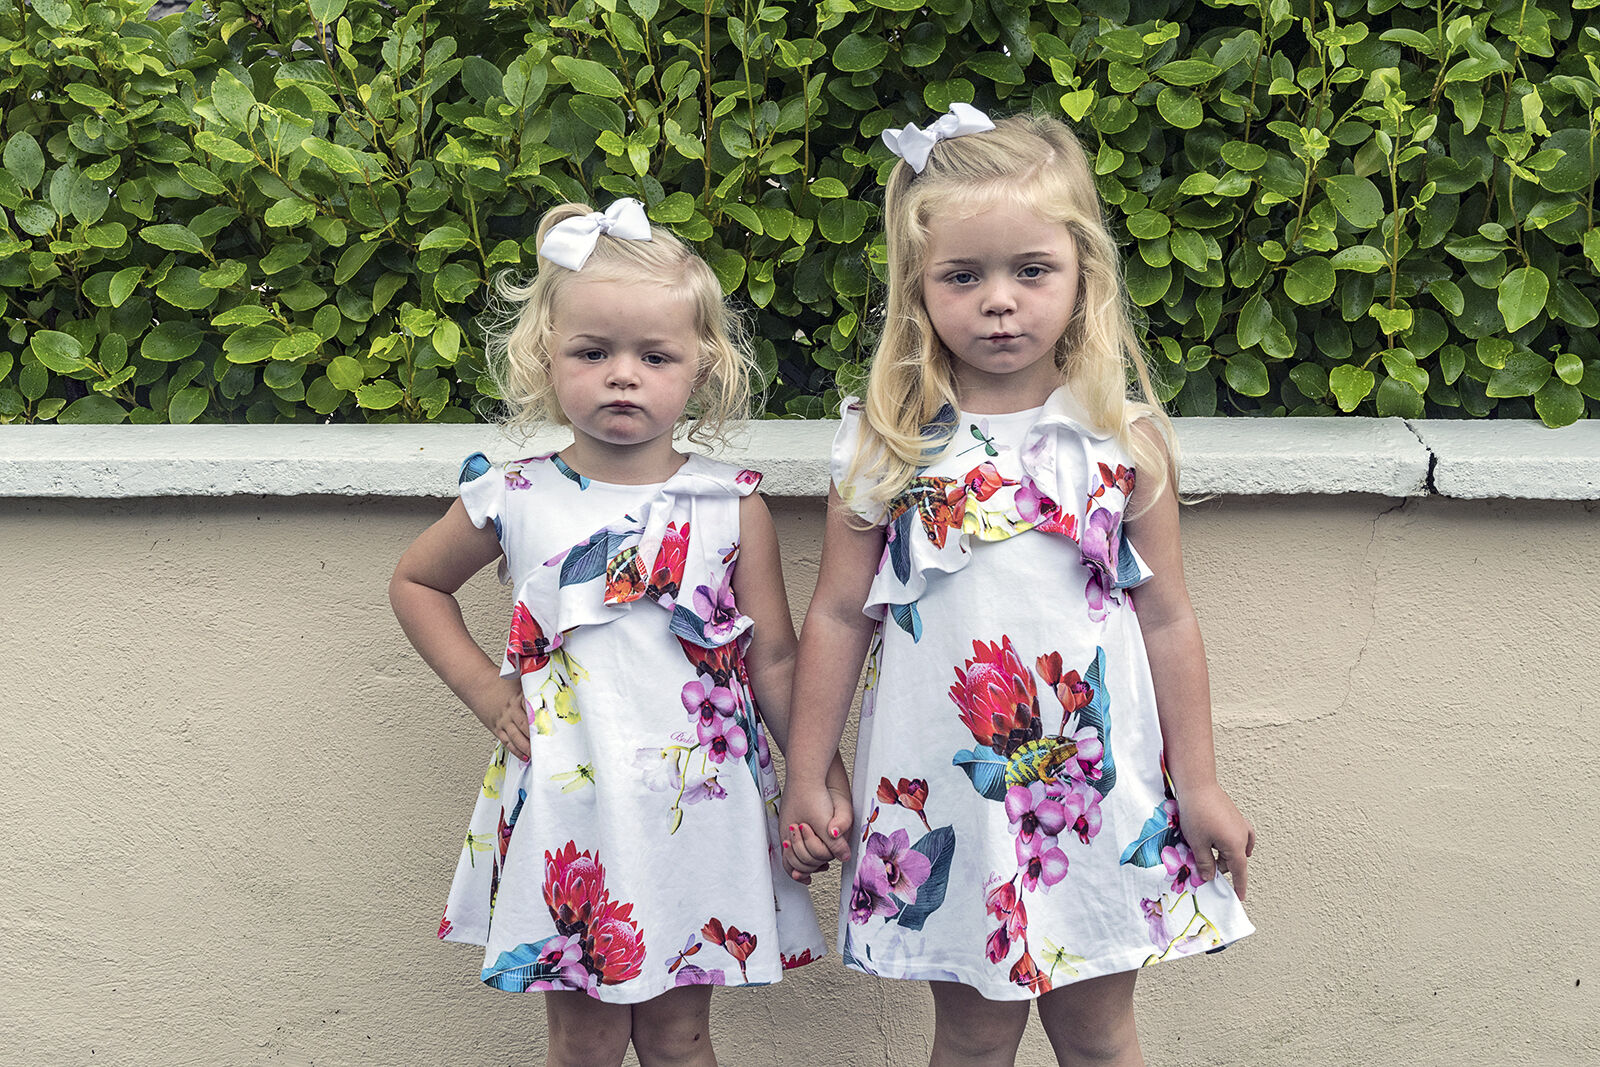 Tropical Flowers Dresses, Puck Fair, Kerry, Ireland 2020